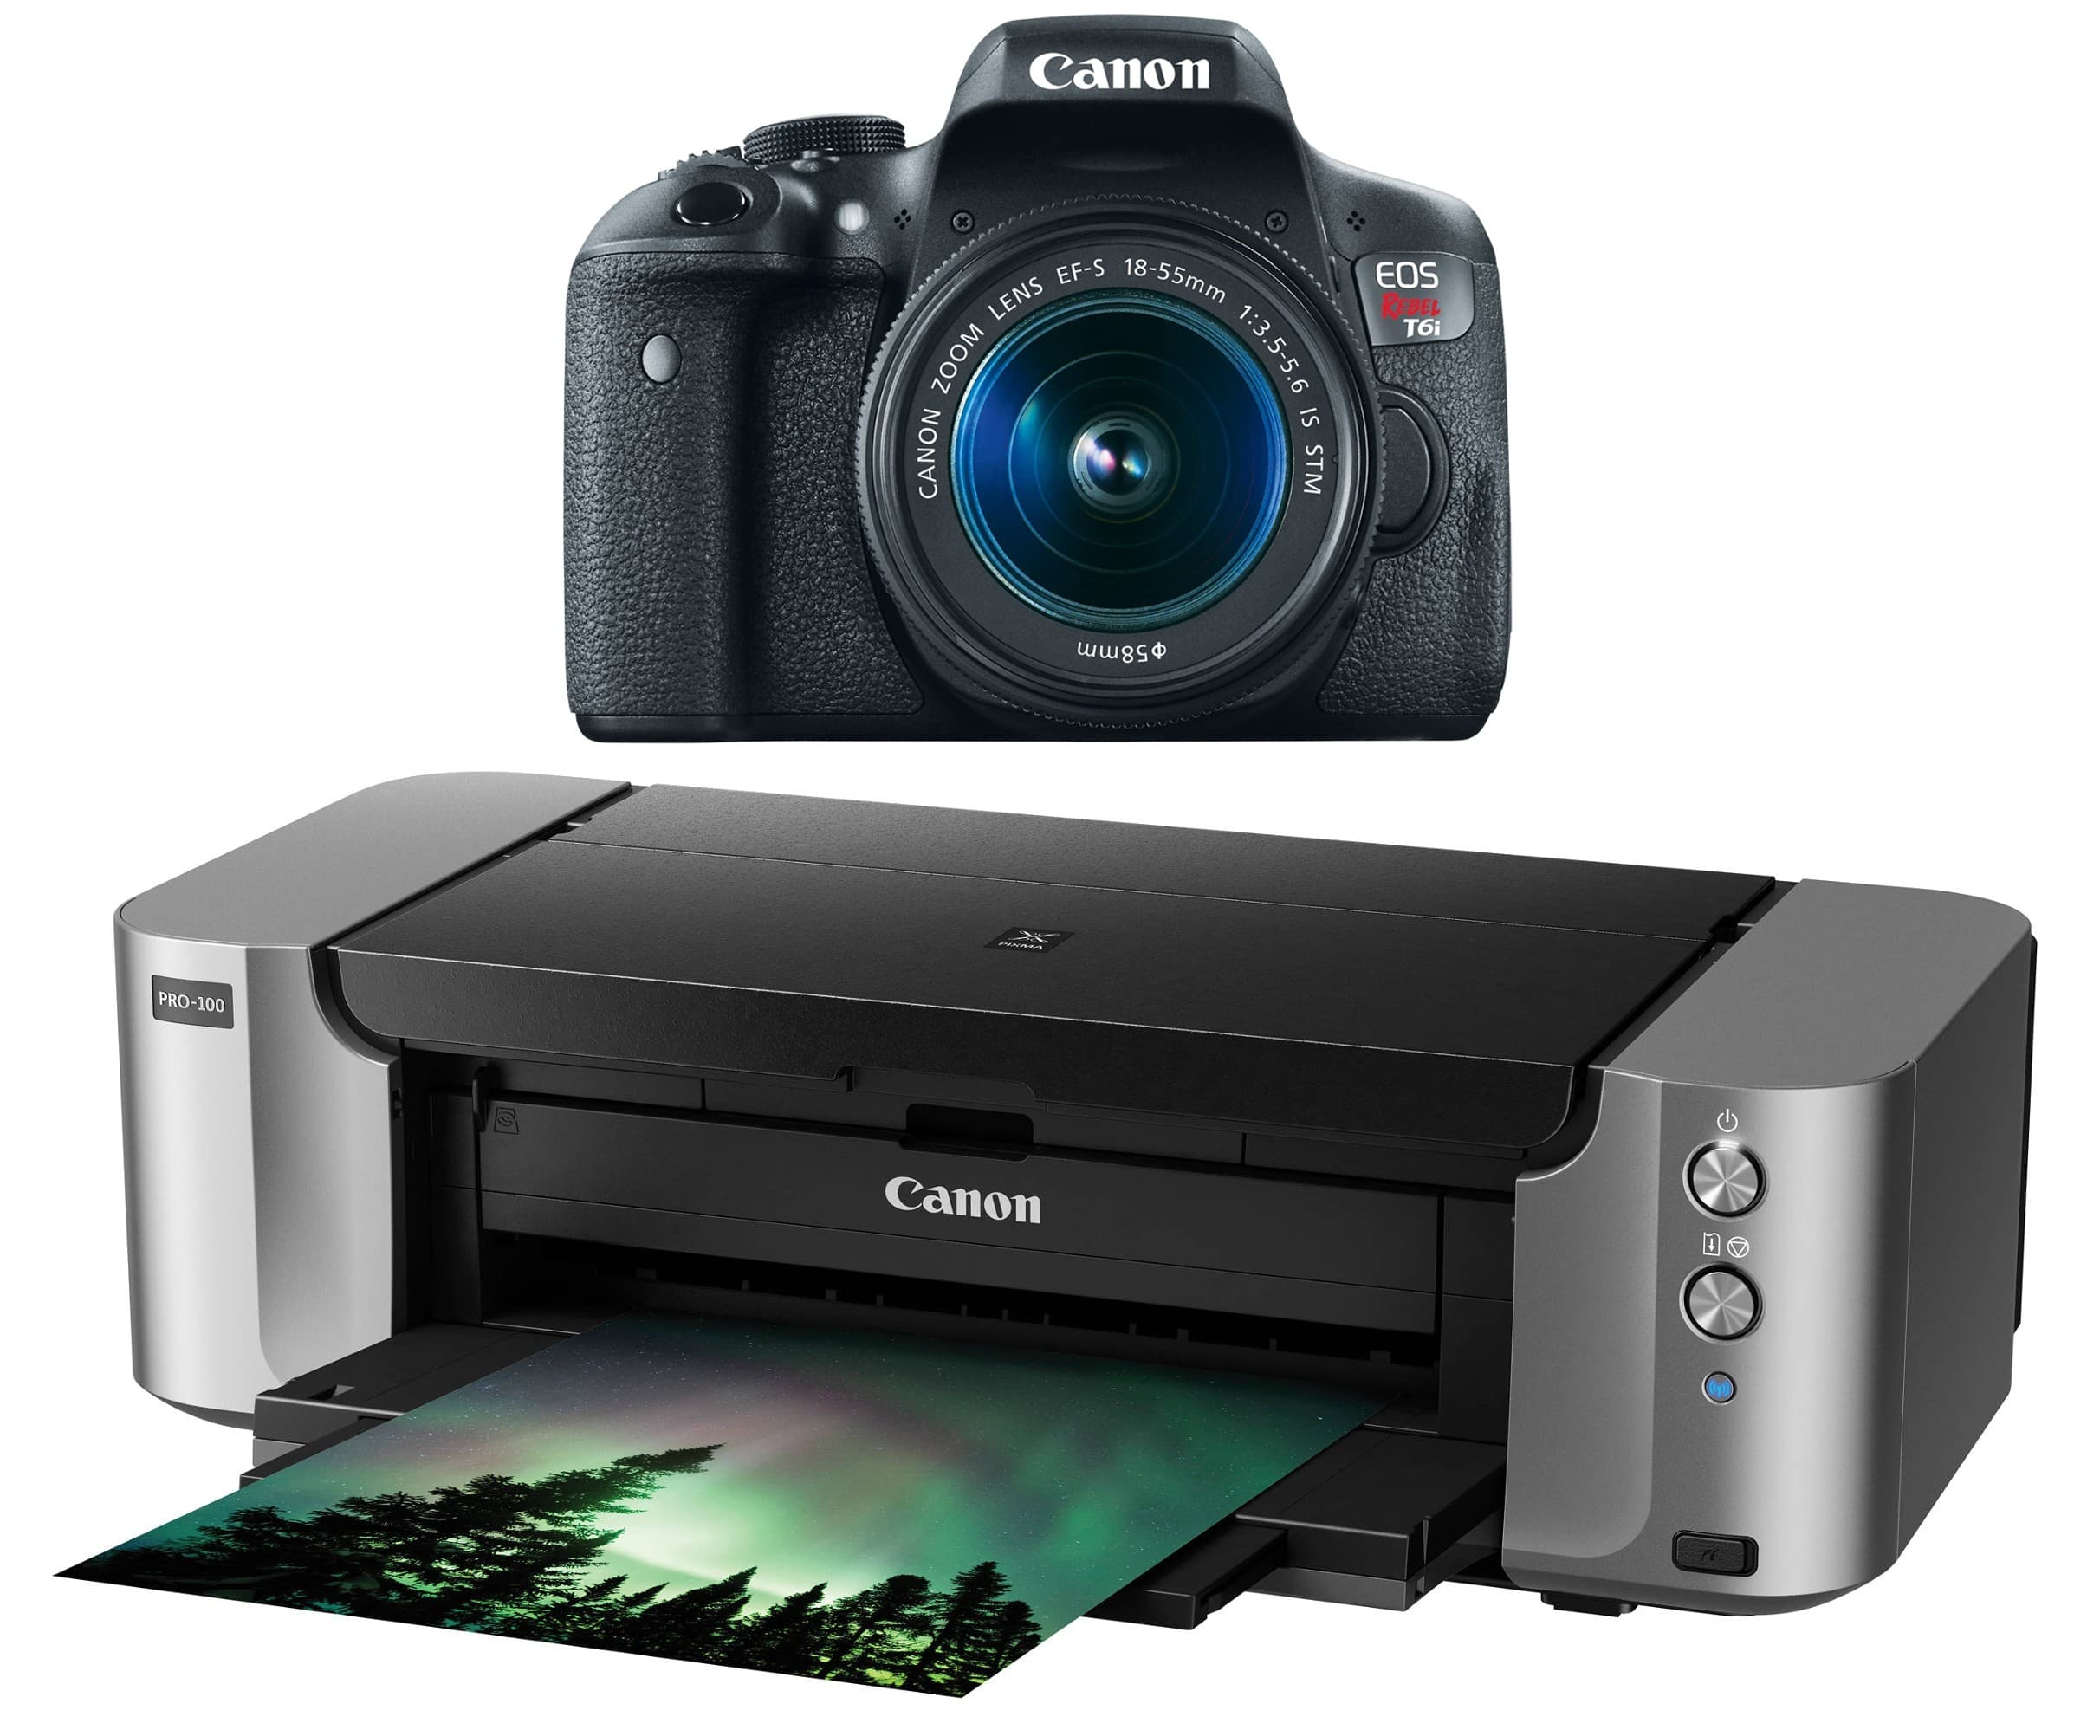 Canon EOS Rebel T6i DSLR Camera With 18-55mm IS STM Lens And Pixma Pro-100 Printer for $549 MIR + Free Shipping